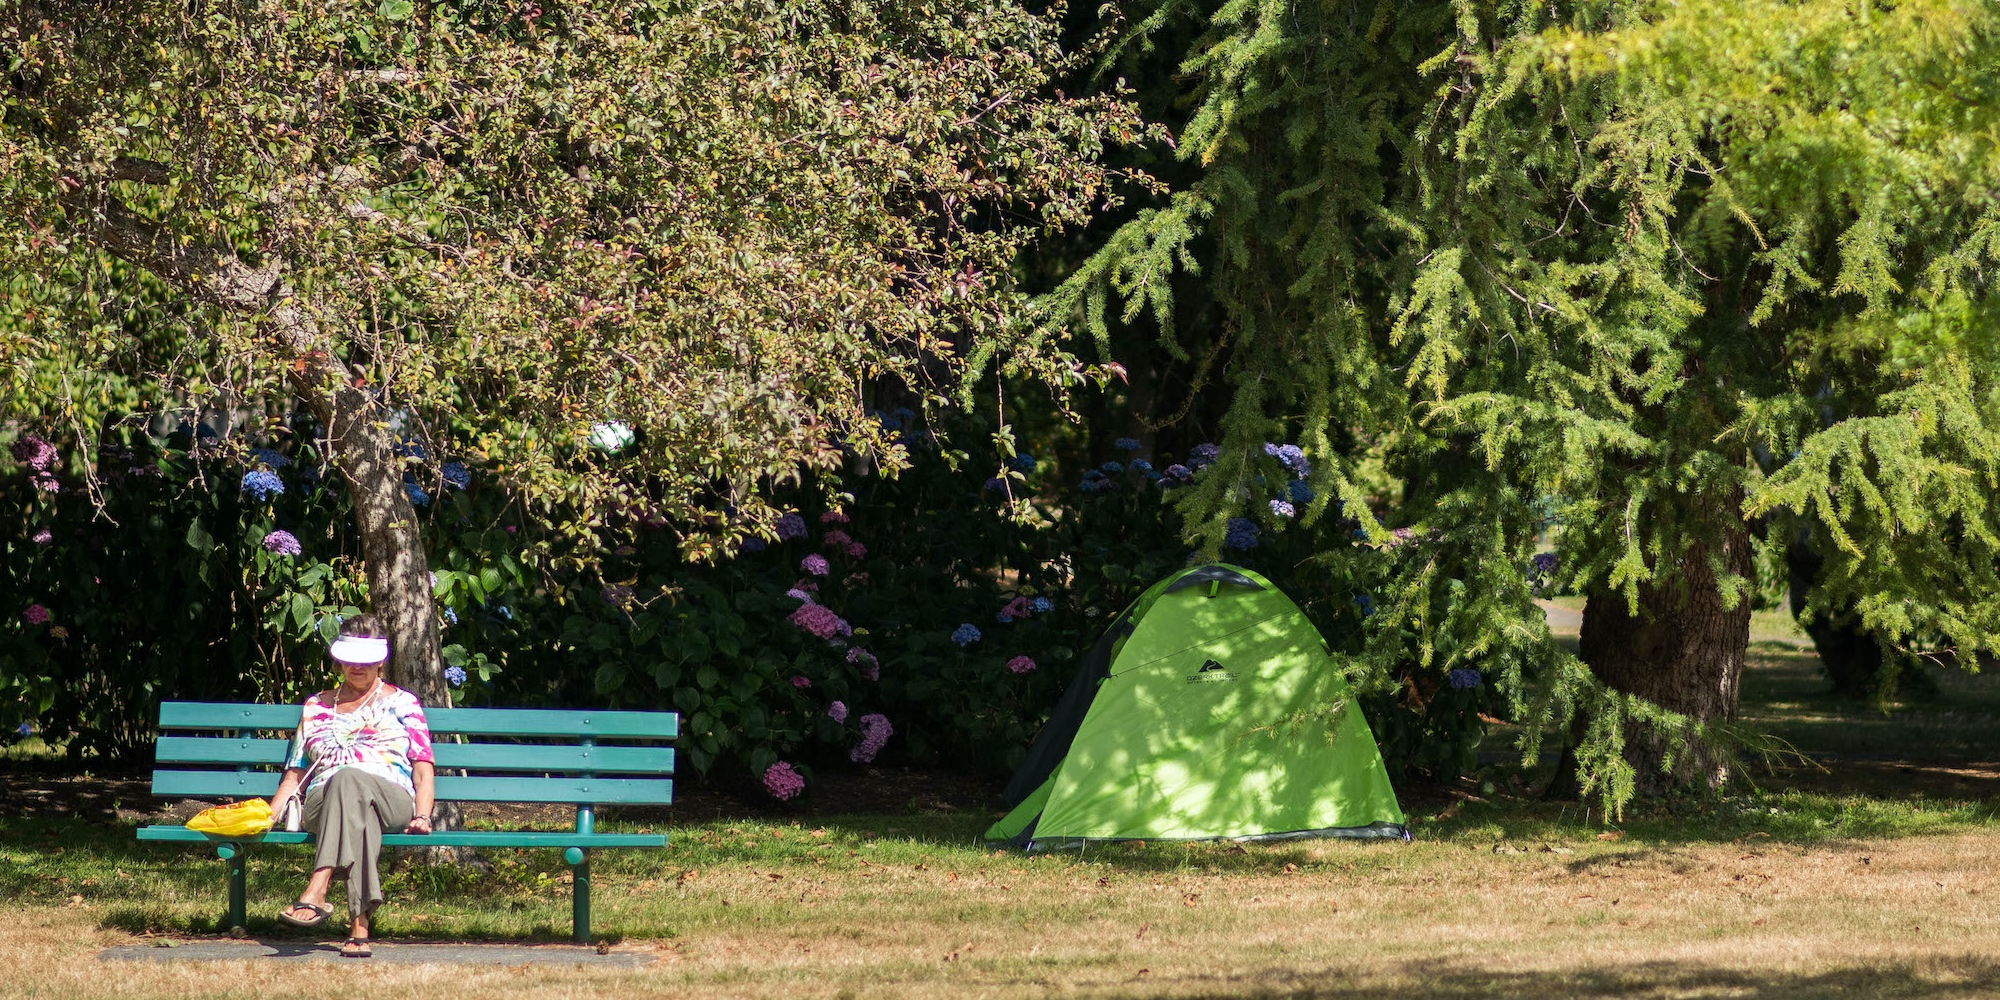 PHOTOS: Inside the tenting community at Beacon Hill Park